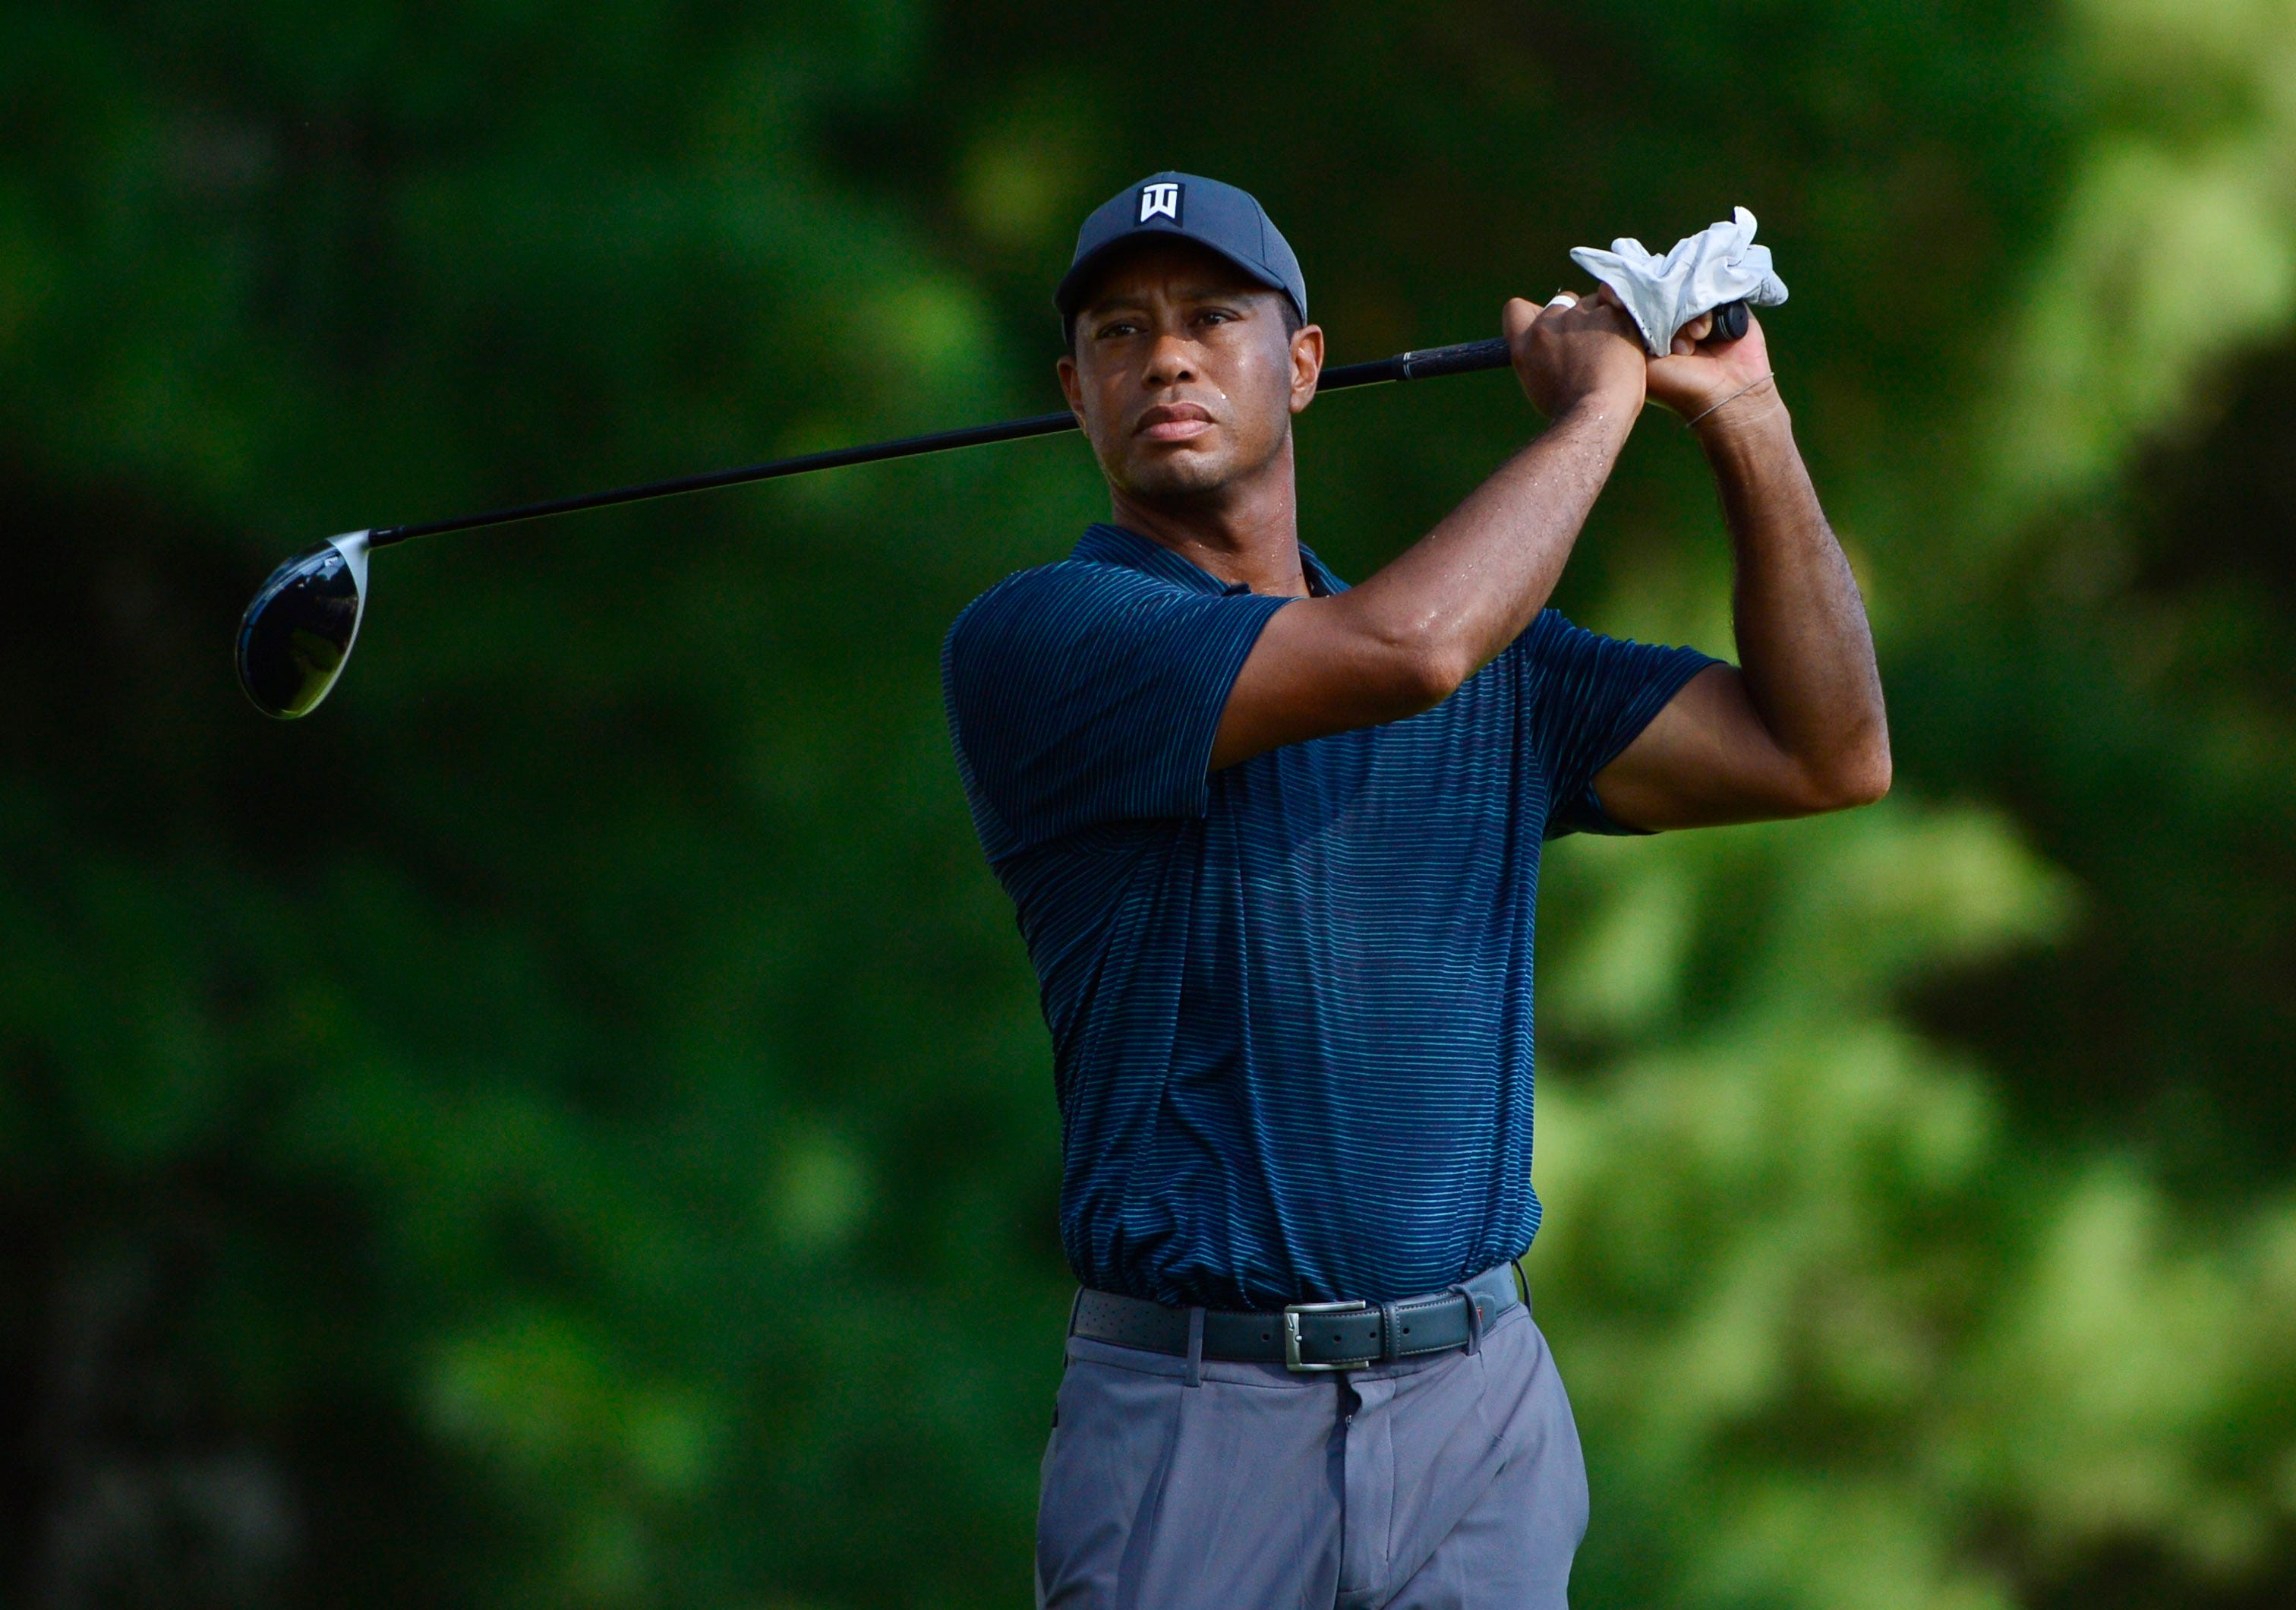 Tiger Tracker: Follow along as Tiger Woods looks to make the cut Friday at the PGA Championship